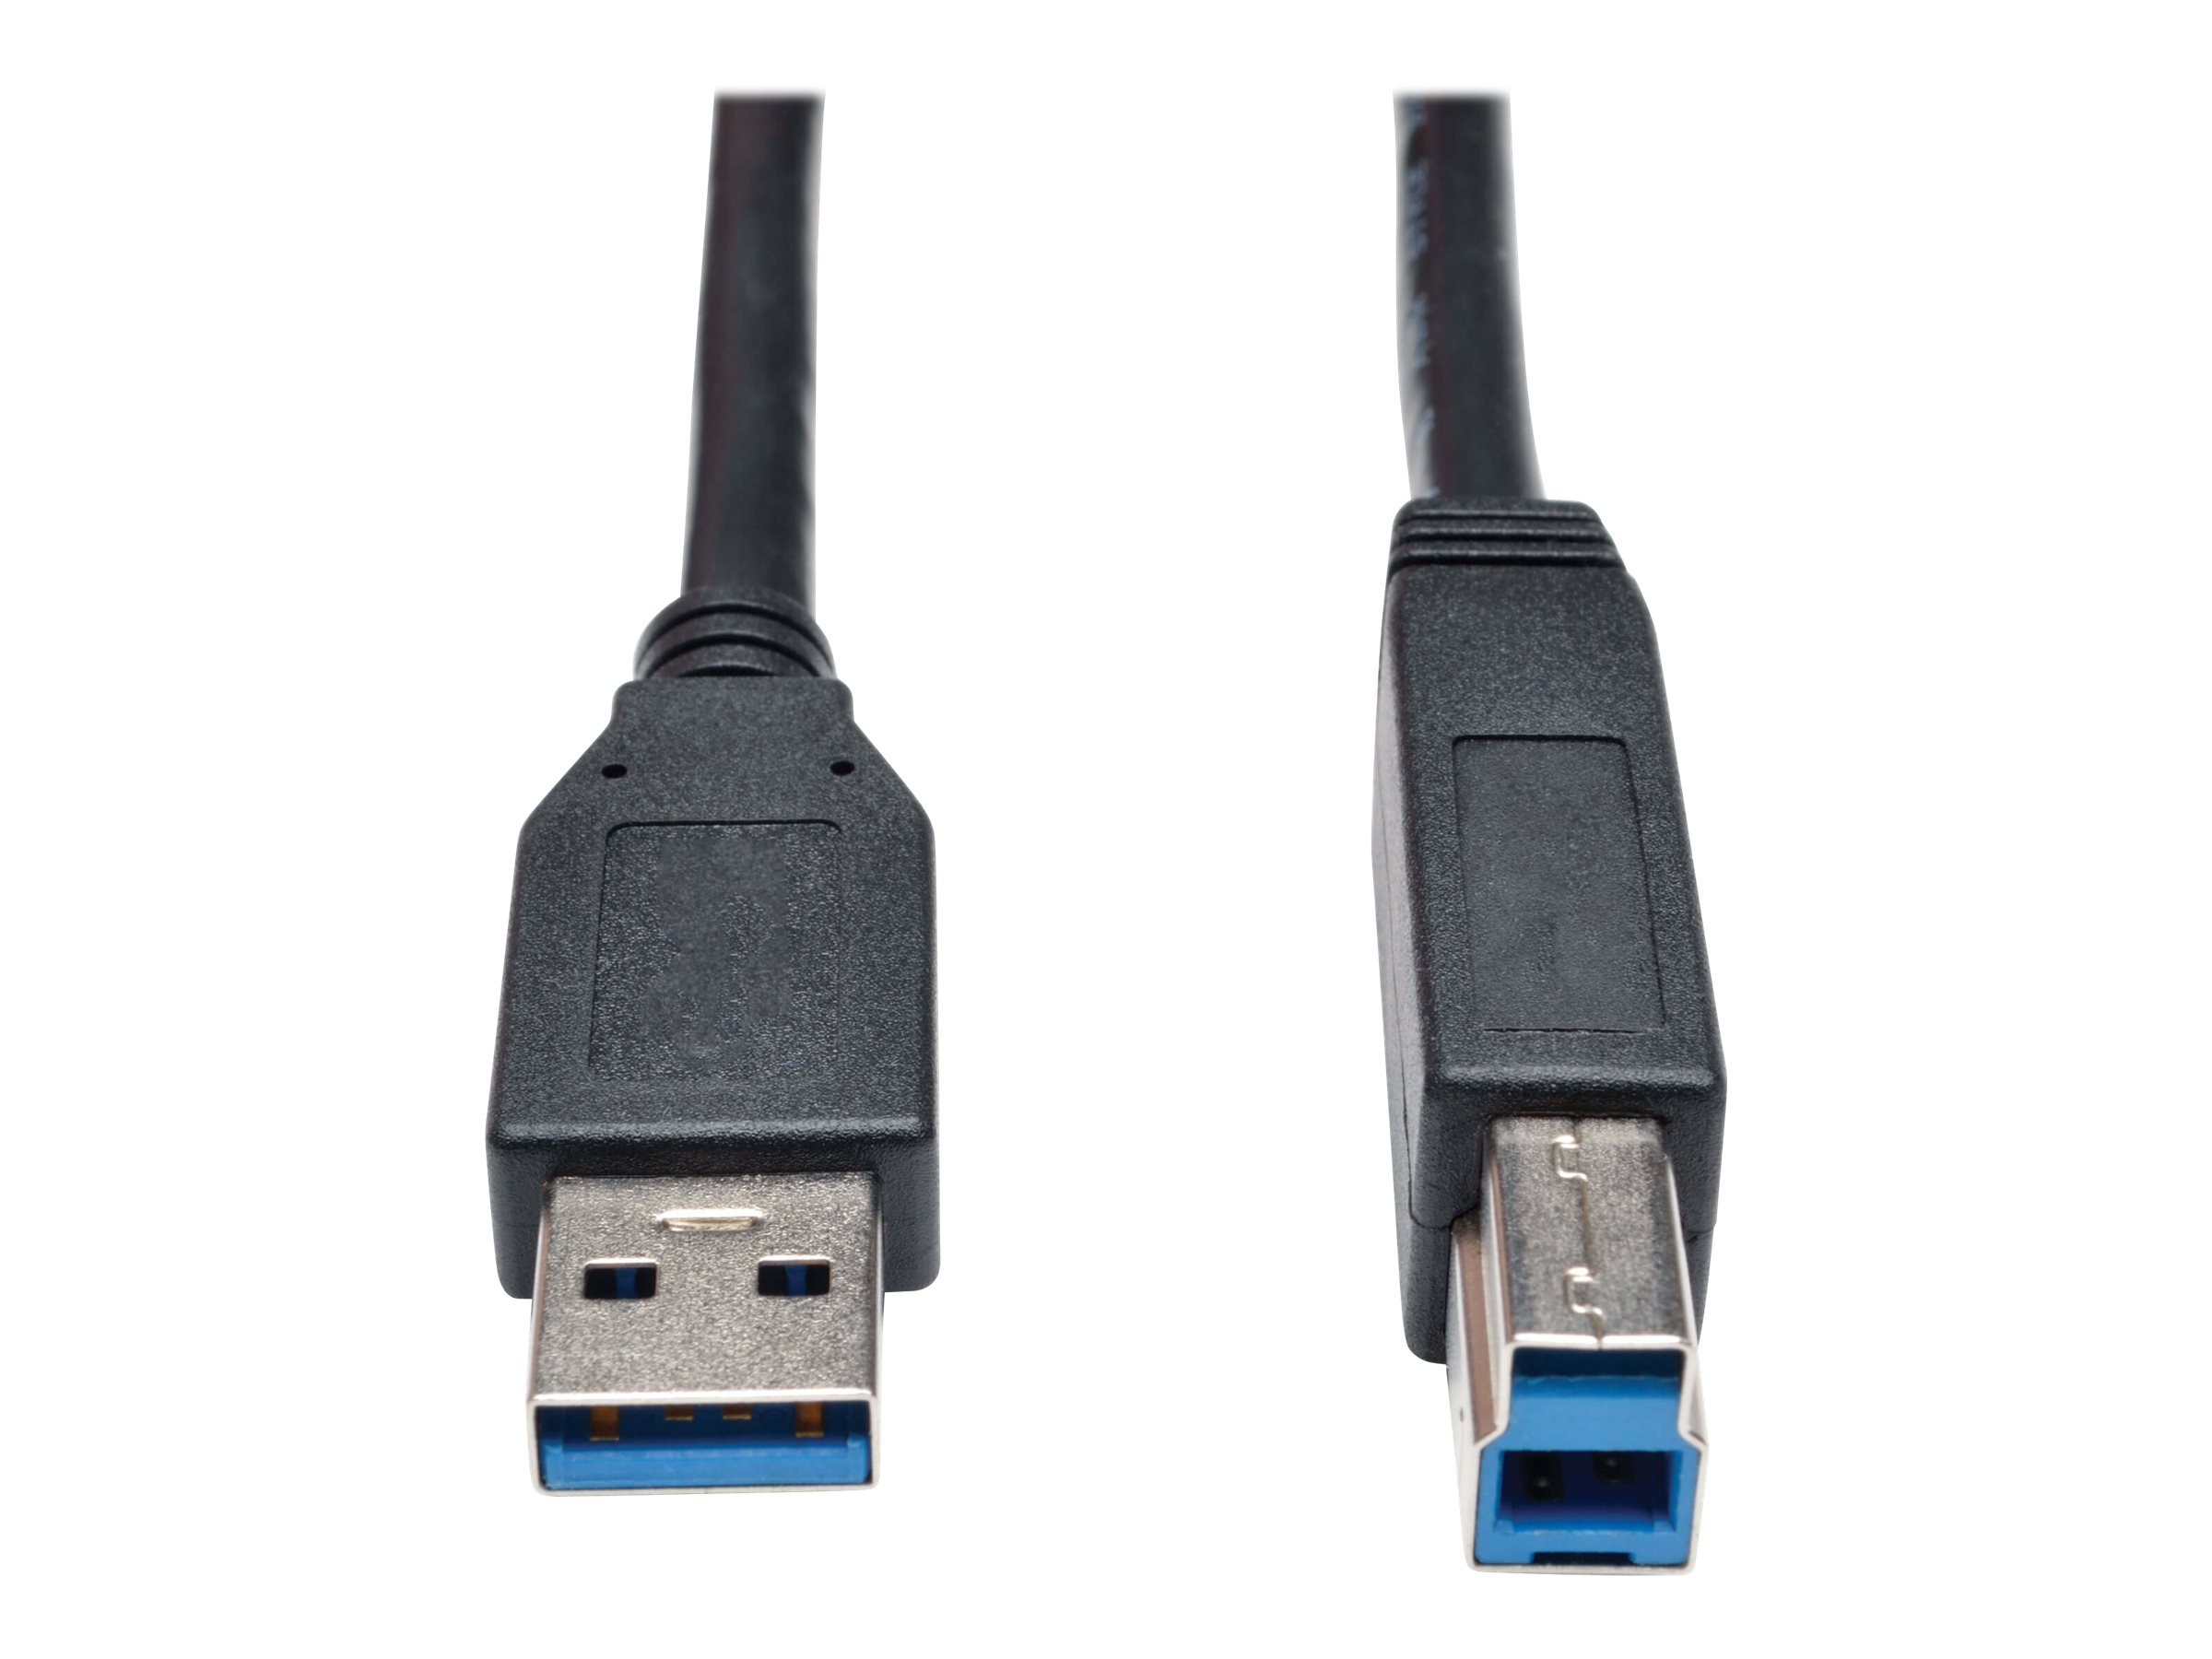 Tripp Lite 3ft USB 3.0 SuperSpeed Device Cable 5 Gbps A Male to B Male Black 3' - USB cable - 91 cm